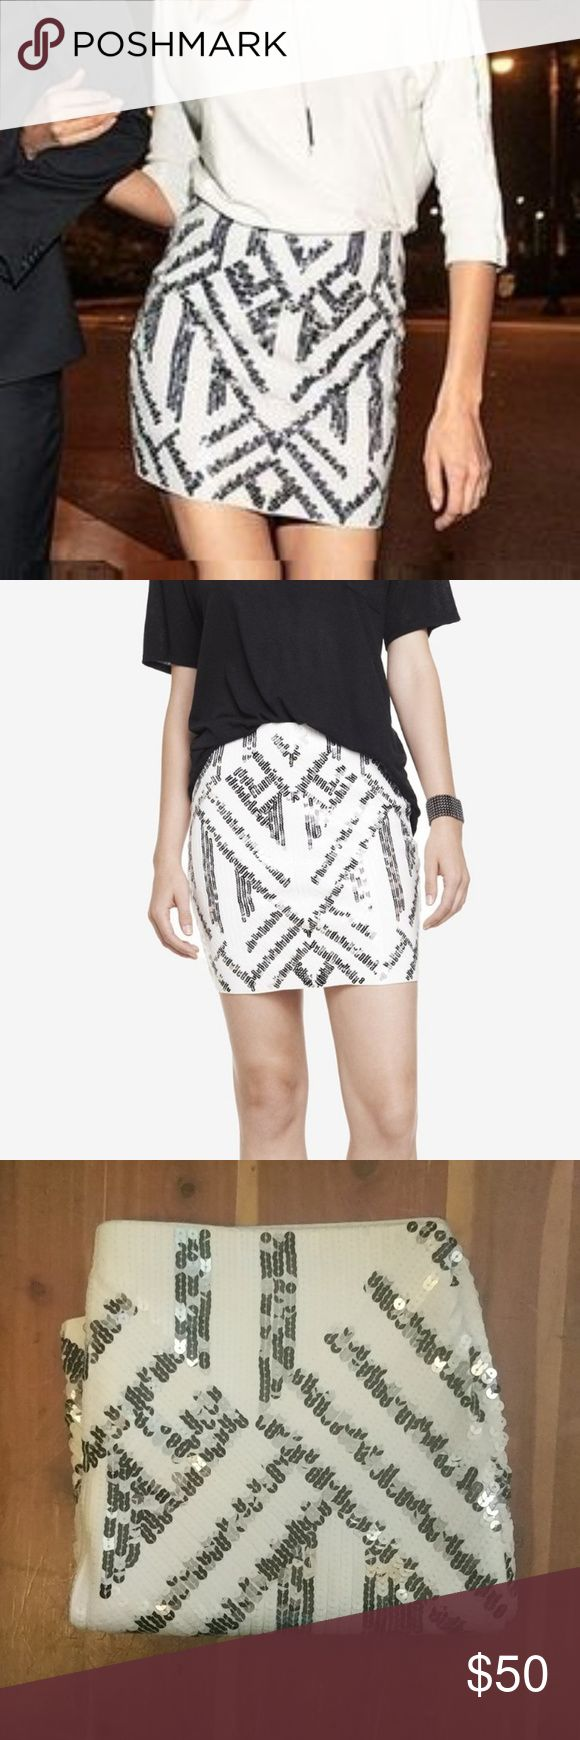 Sequin Skirt White and Silver sequin skirt Express Skirts Mini